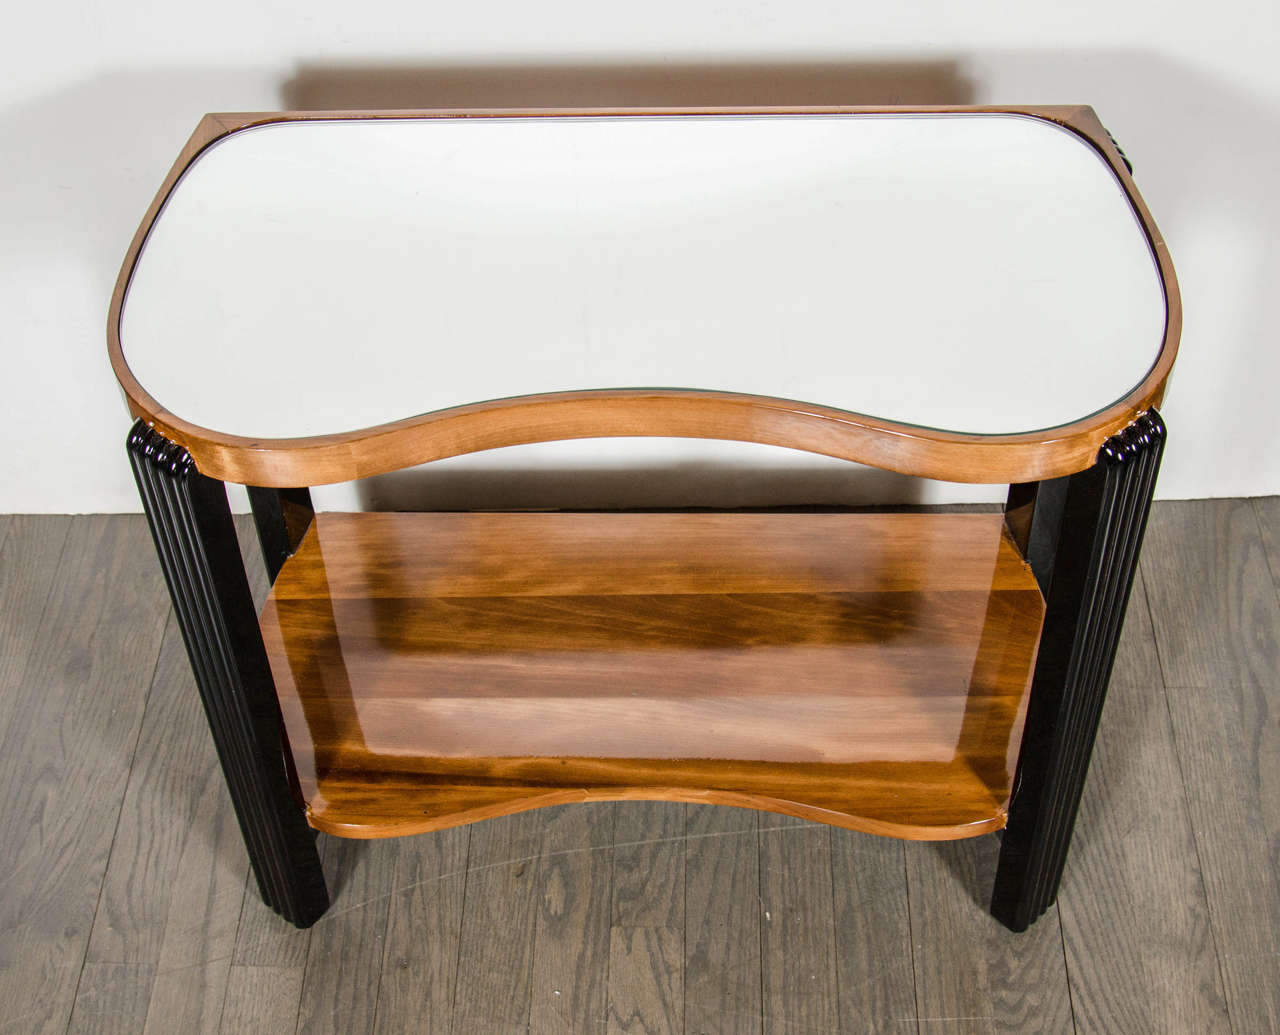 Art Deco Machine Age Side Table with Streamline Reeded Leg Design In Excellent Condition For Sale In New York, NY